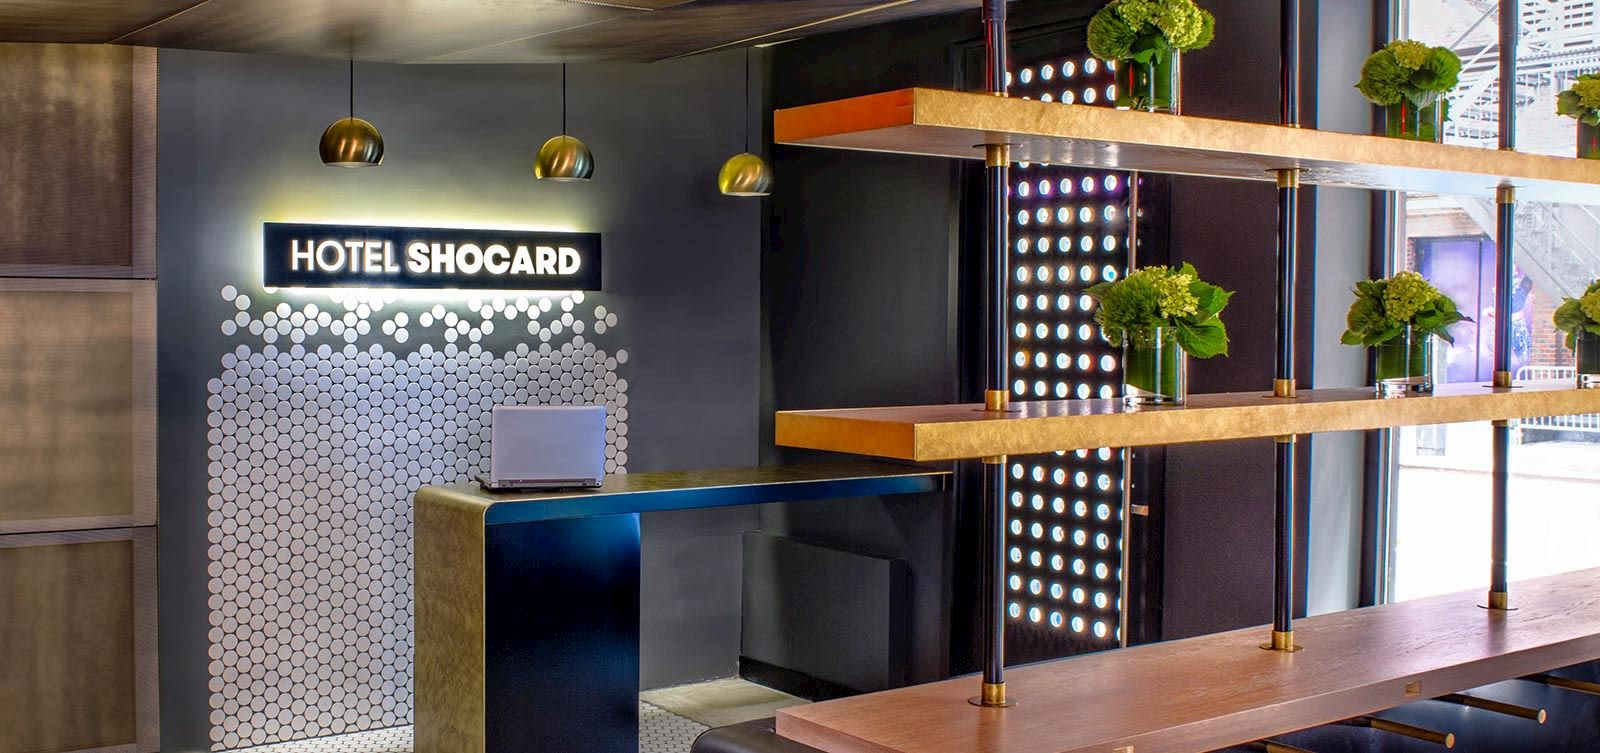 Hotel Shocard, New York Services